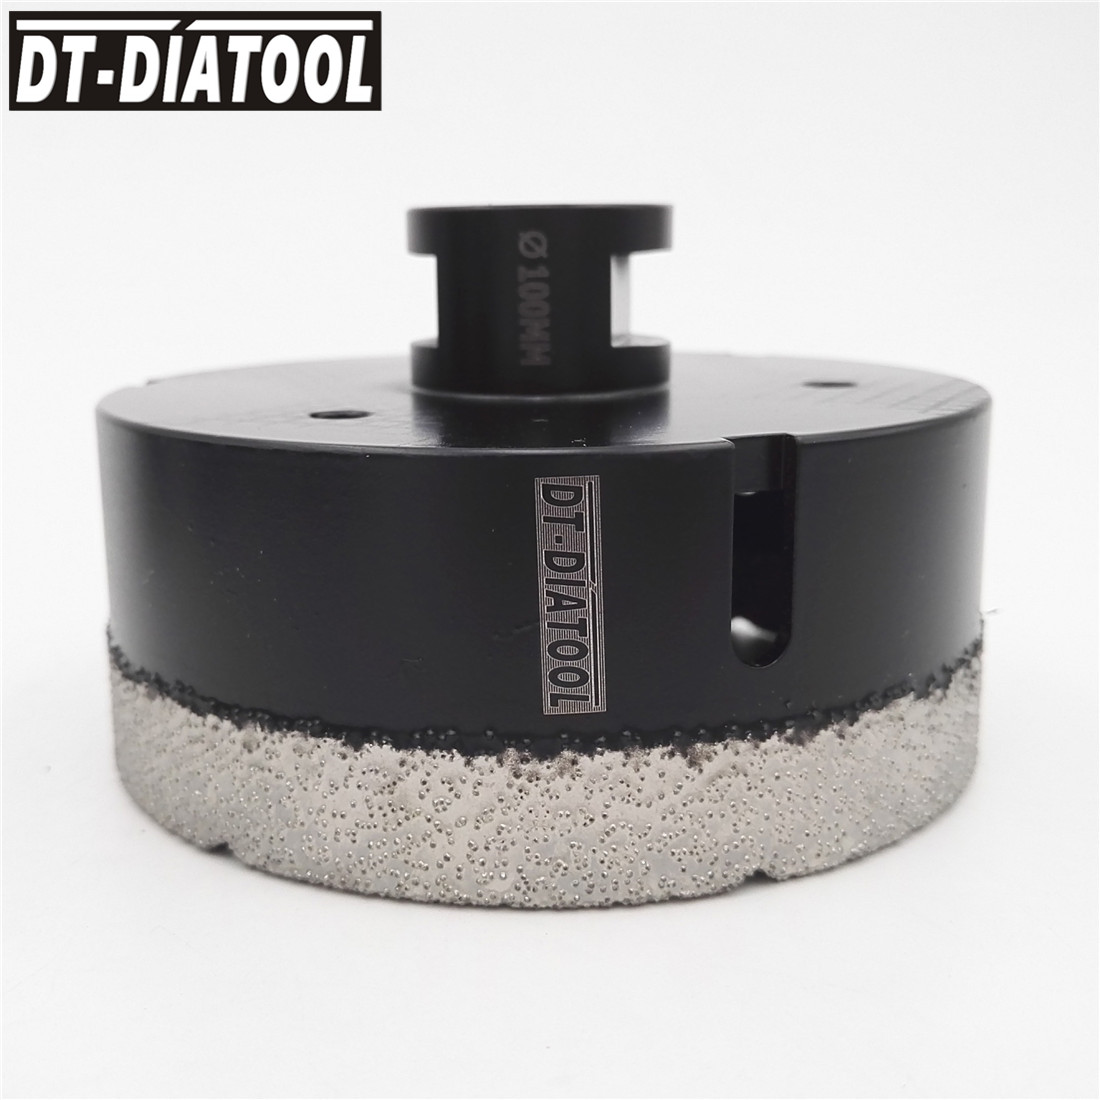 цена DT-DIATOOL 100mm Dry Vacuum Brazed Diamond Drill Core Bits stone Tile Hole Saw Professional Quality Drilling bits M14 Thread